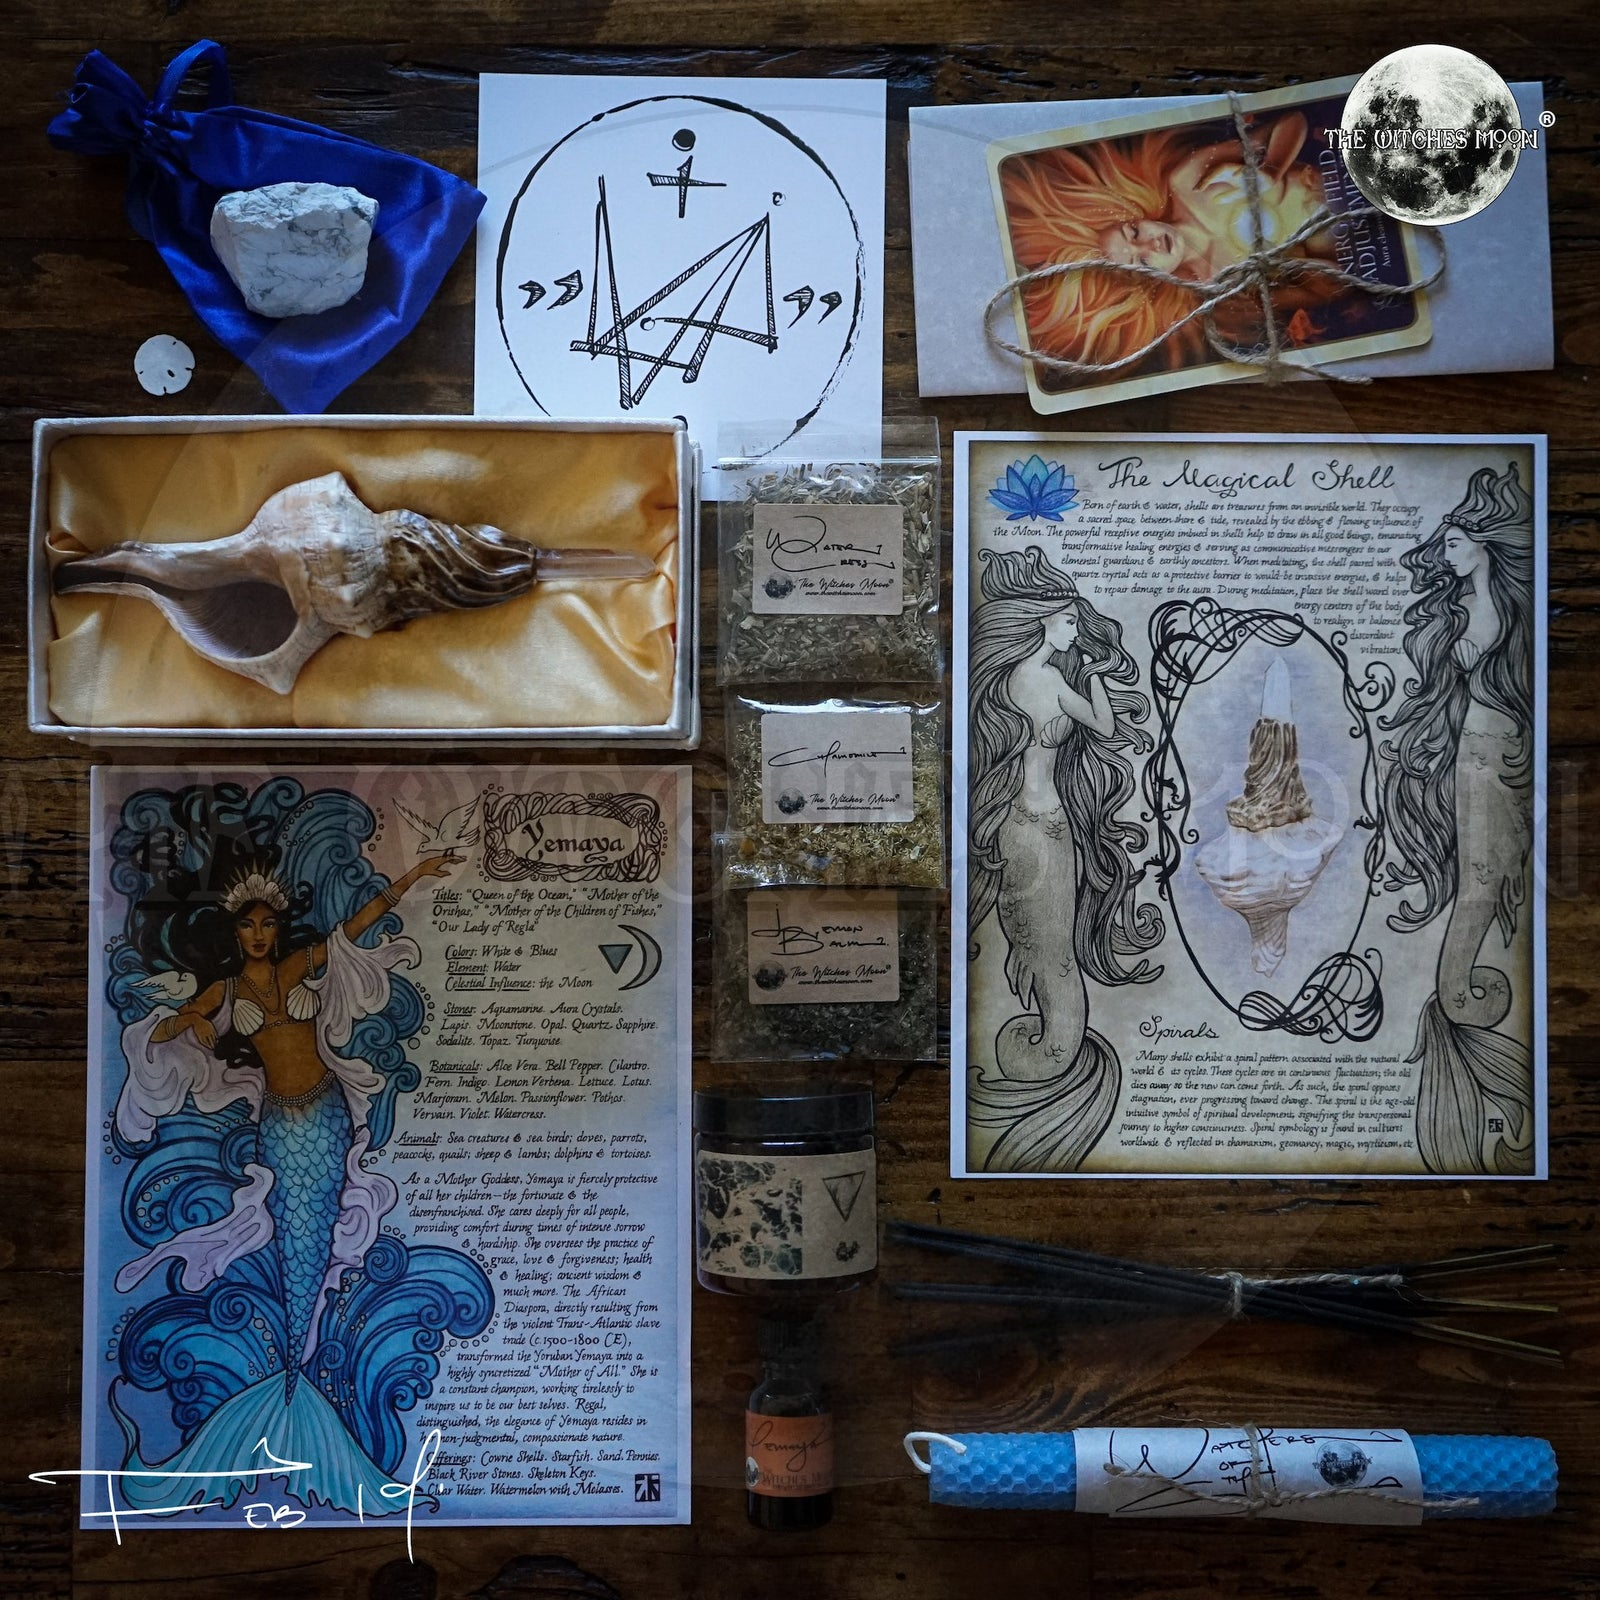 The Witches Moon® - The Sacred Sea - February 2019